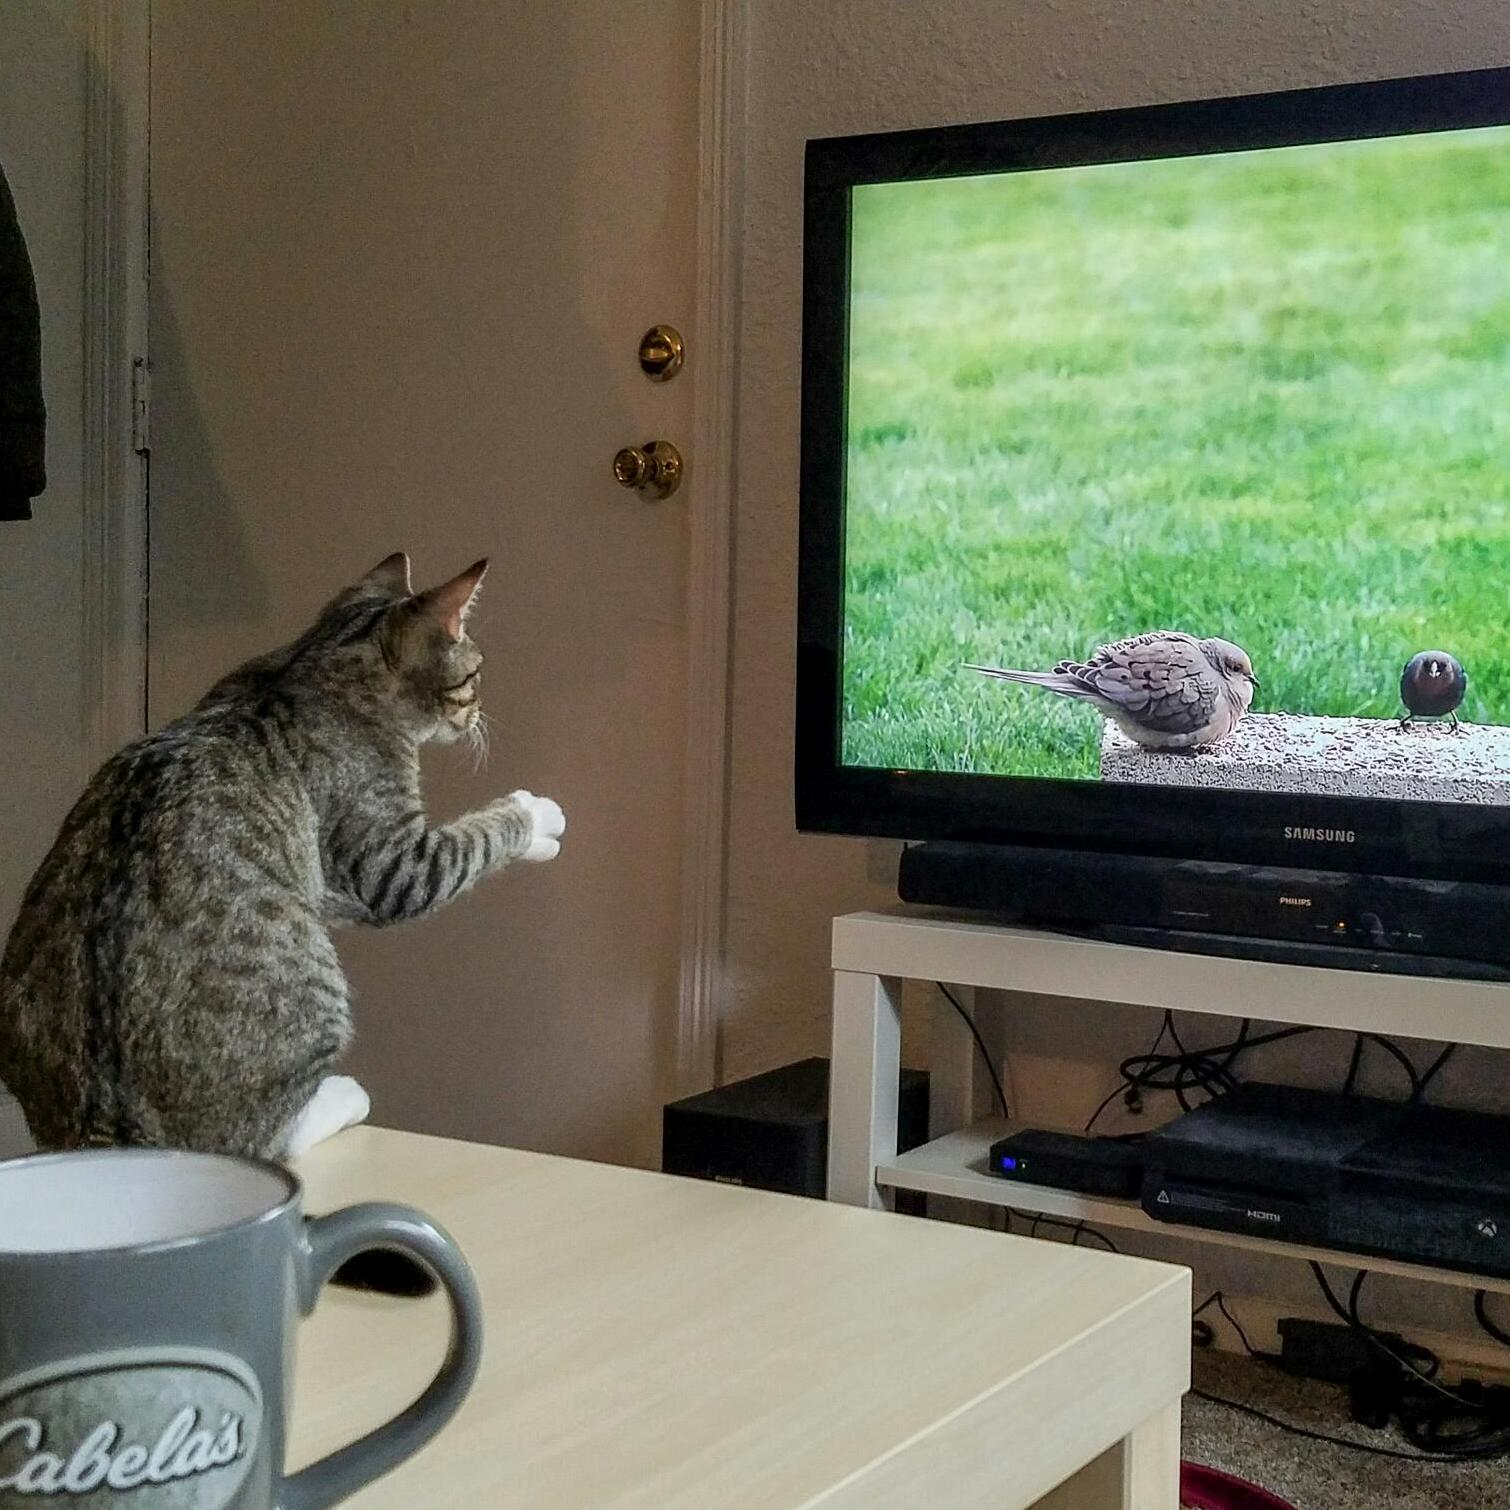 My friends cat seems very focused on the tv